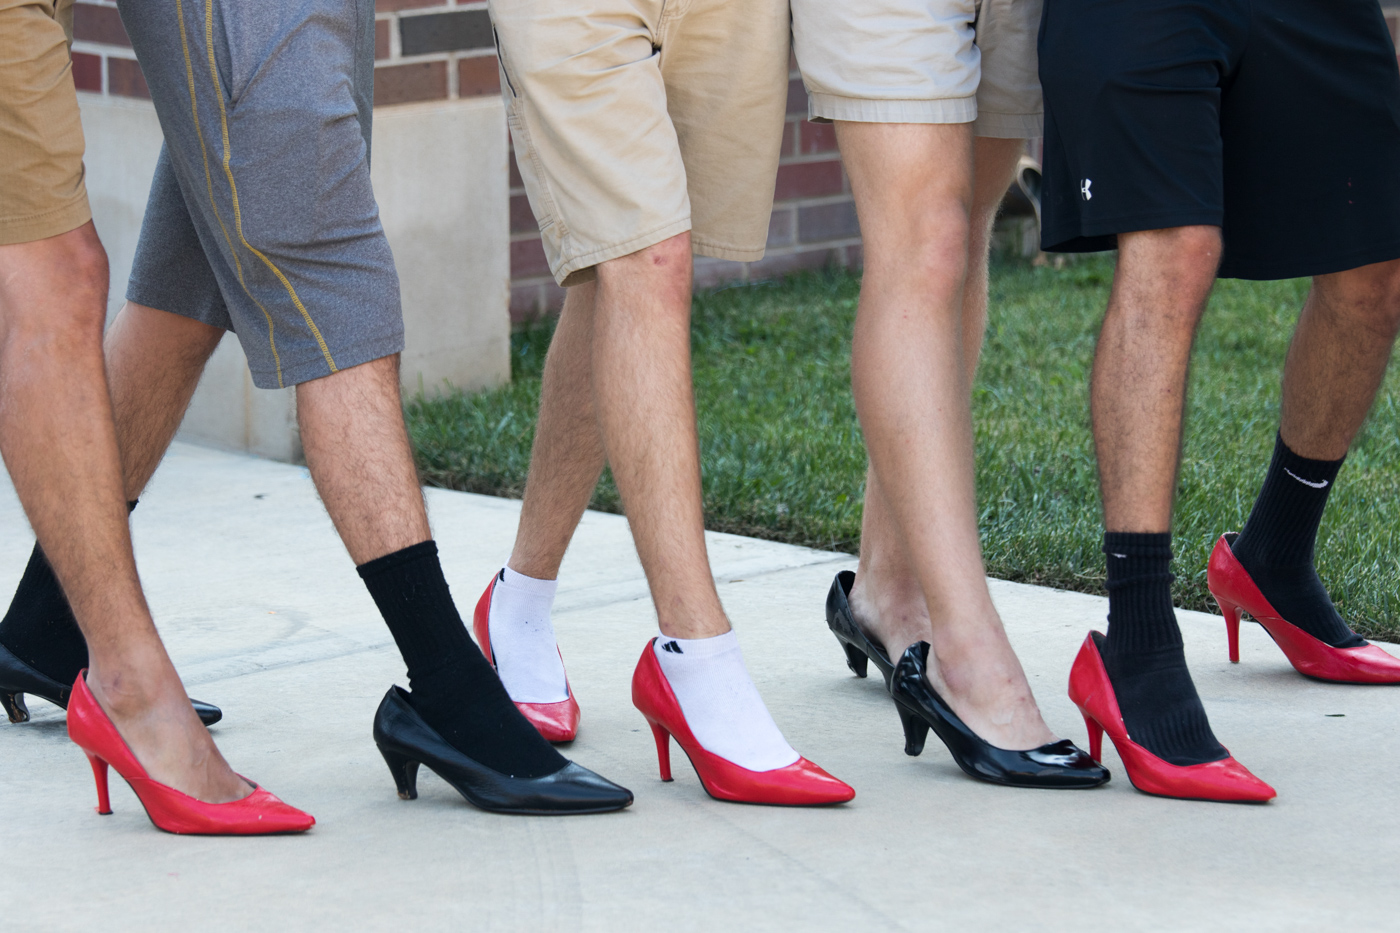 FROM THE FILES: A group of guys wearing high heels for the 2017 Walk-A-Mile.